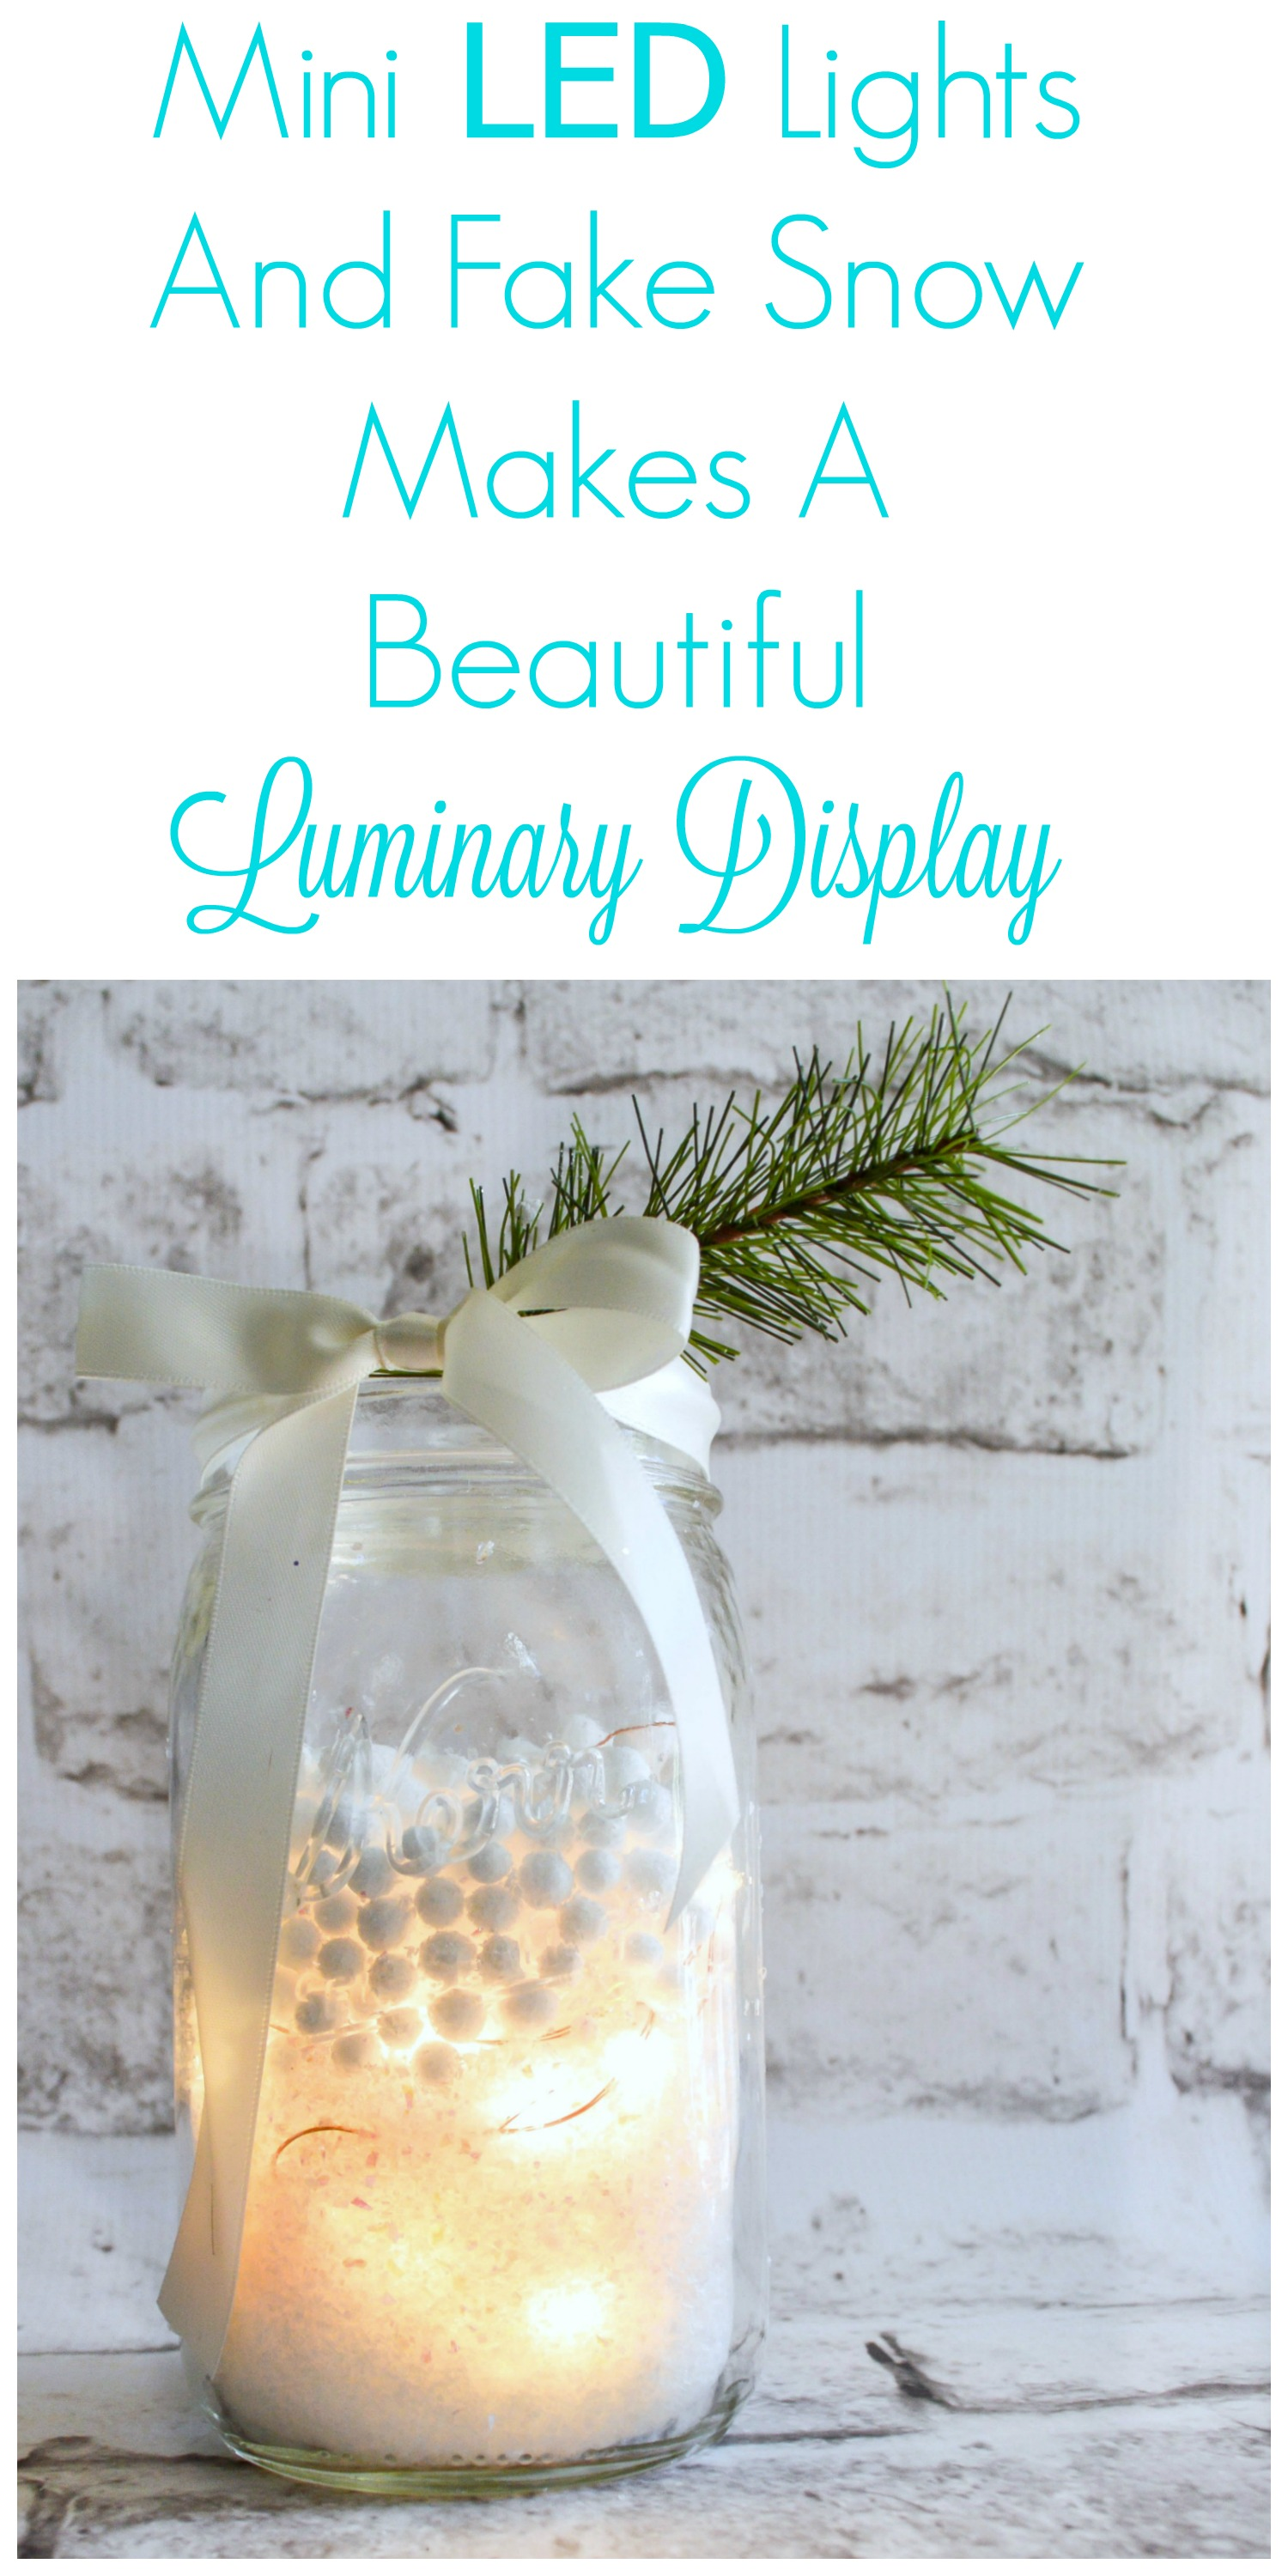 Such a great idea and so pretty inside a mason jar